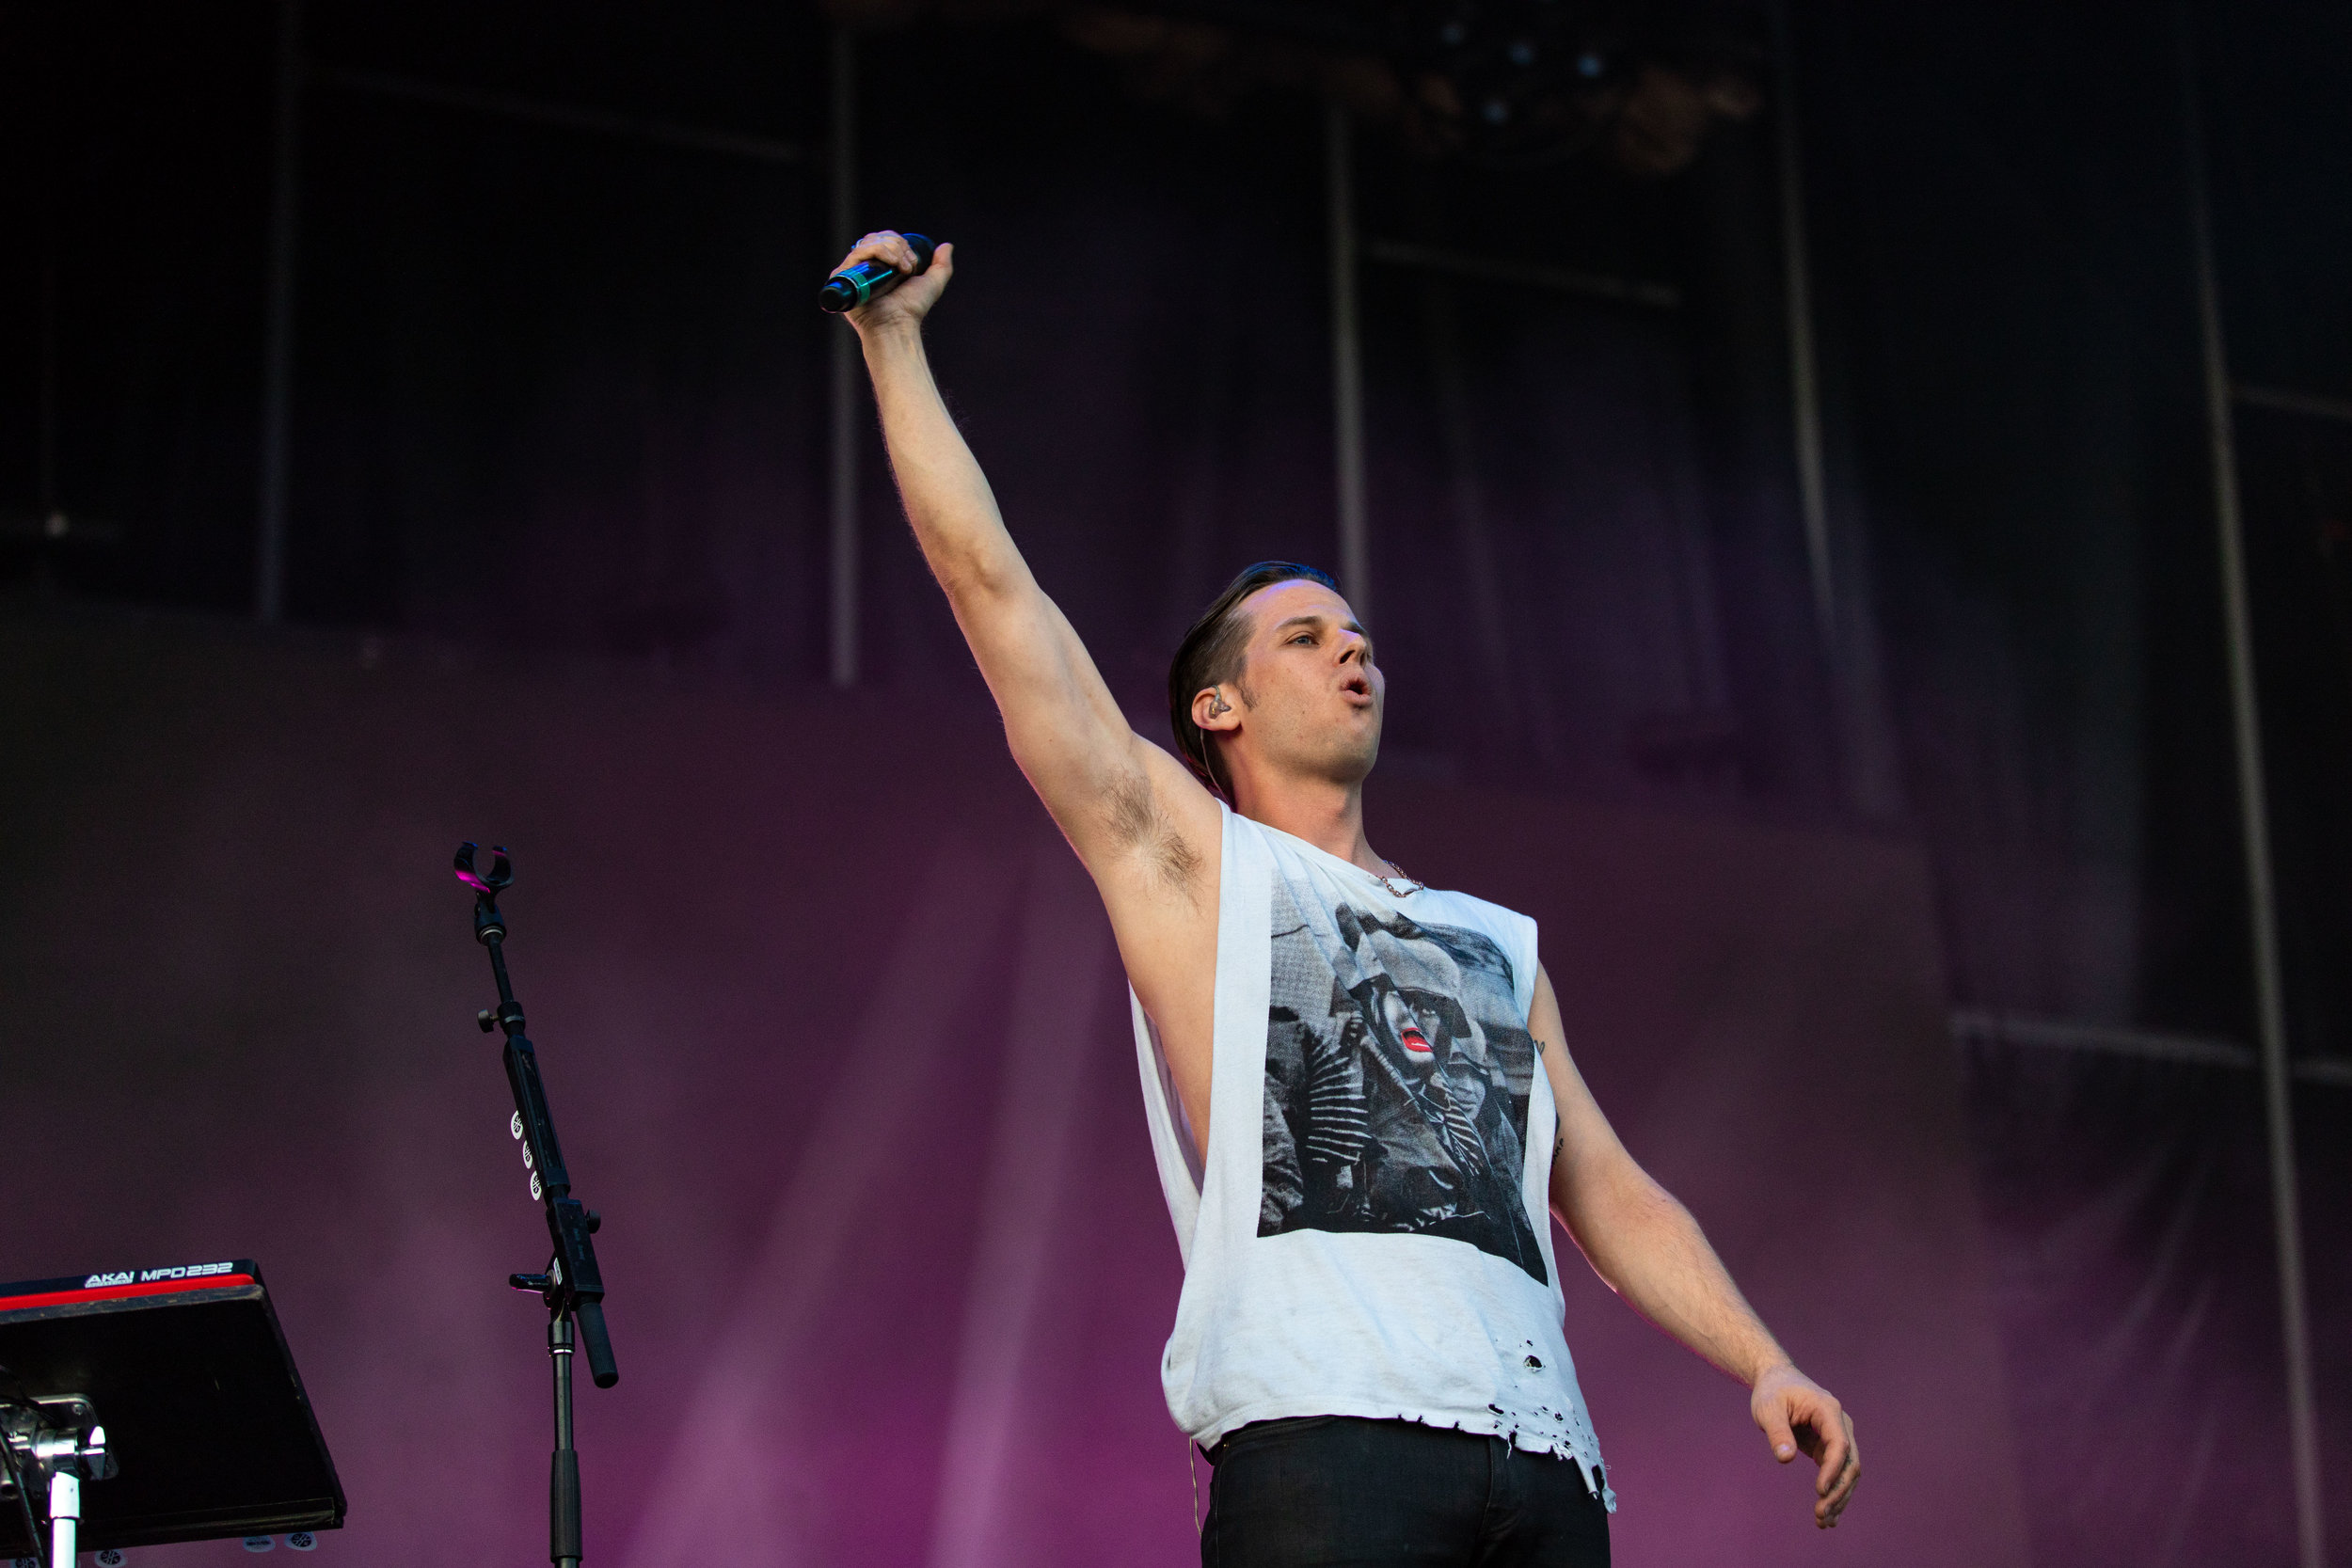 Poulos-Firefly2018-FosterThePeople-6.jpg